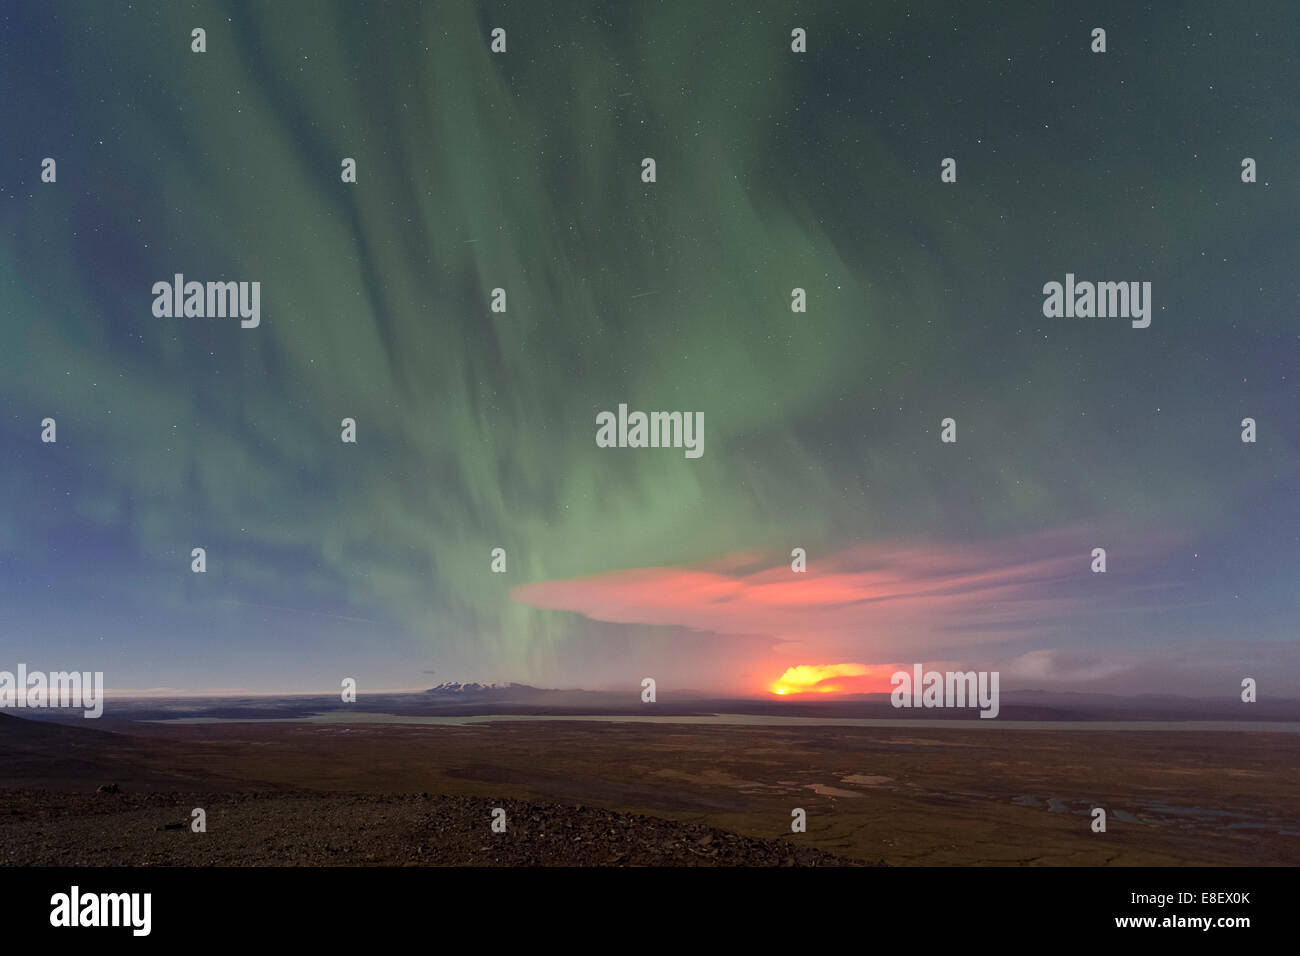 Ash and gas cloud of the Holuhraun fissure eruption, near the volcano Bárðarbunga, northern lights, highlands - Stock Image